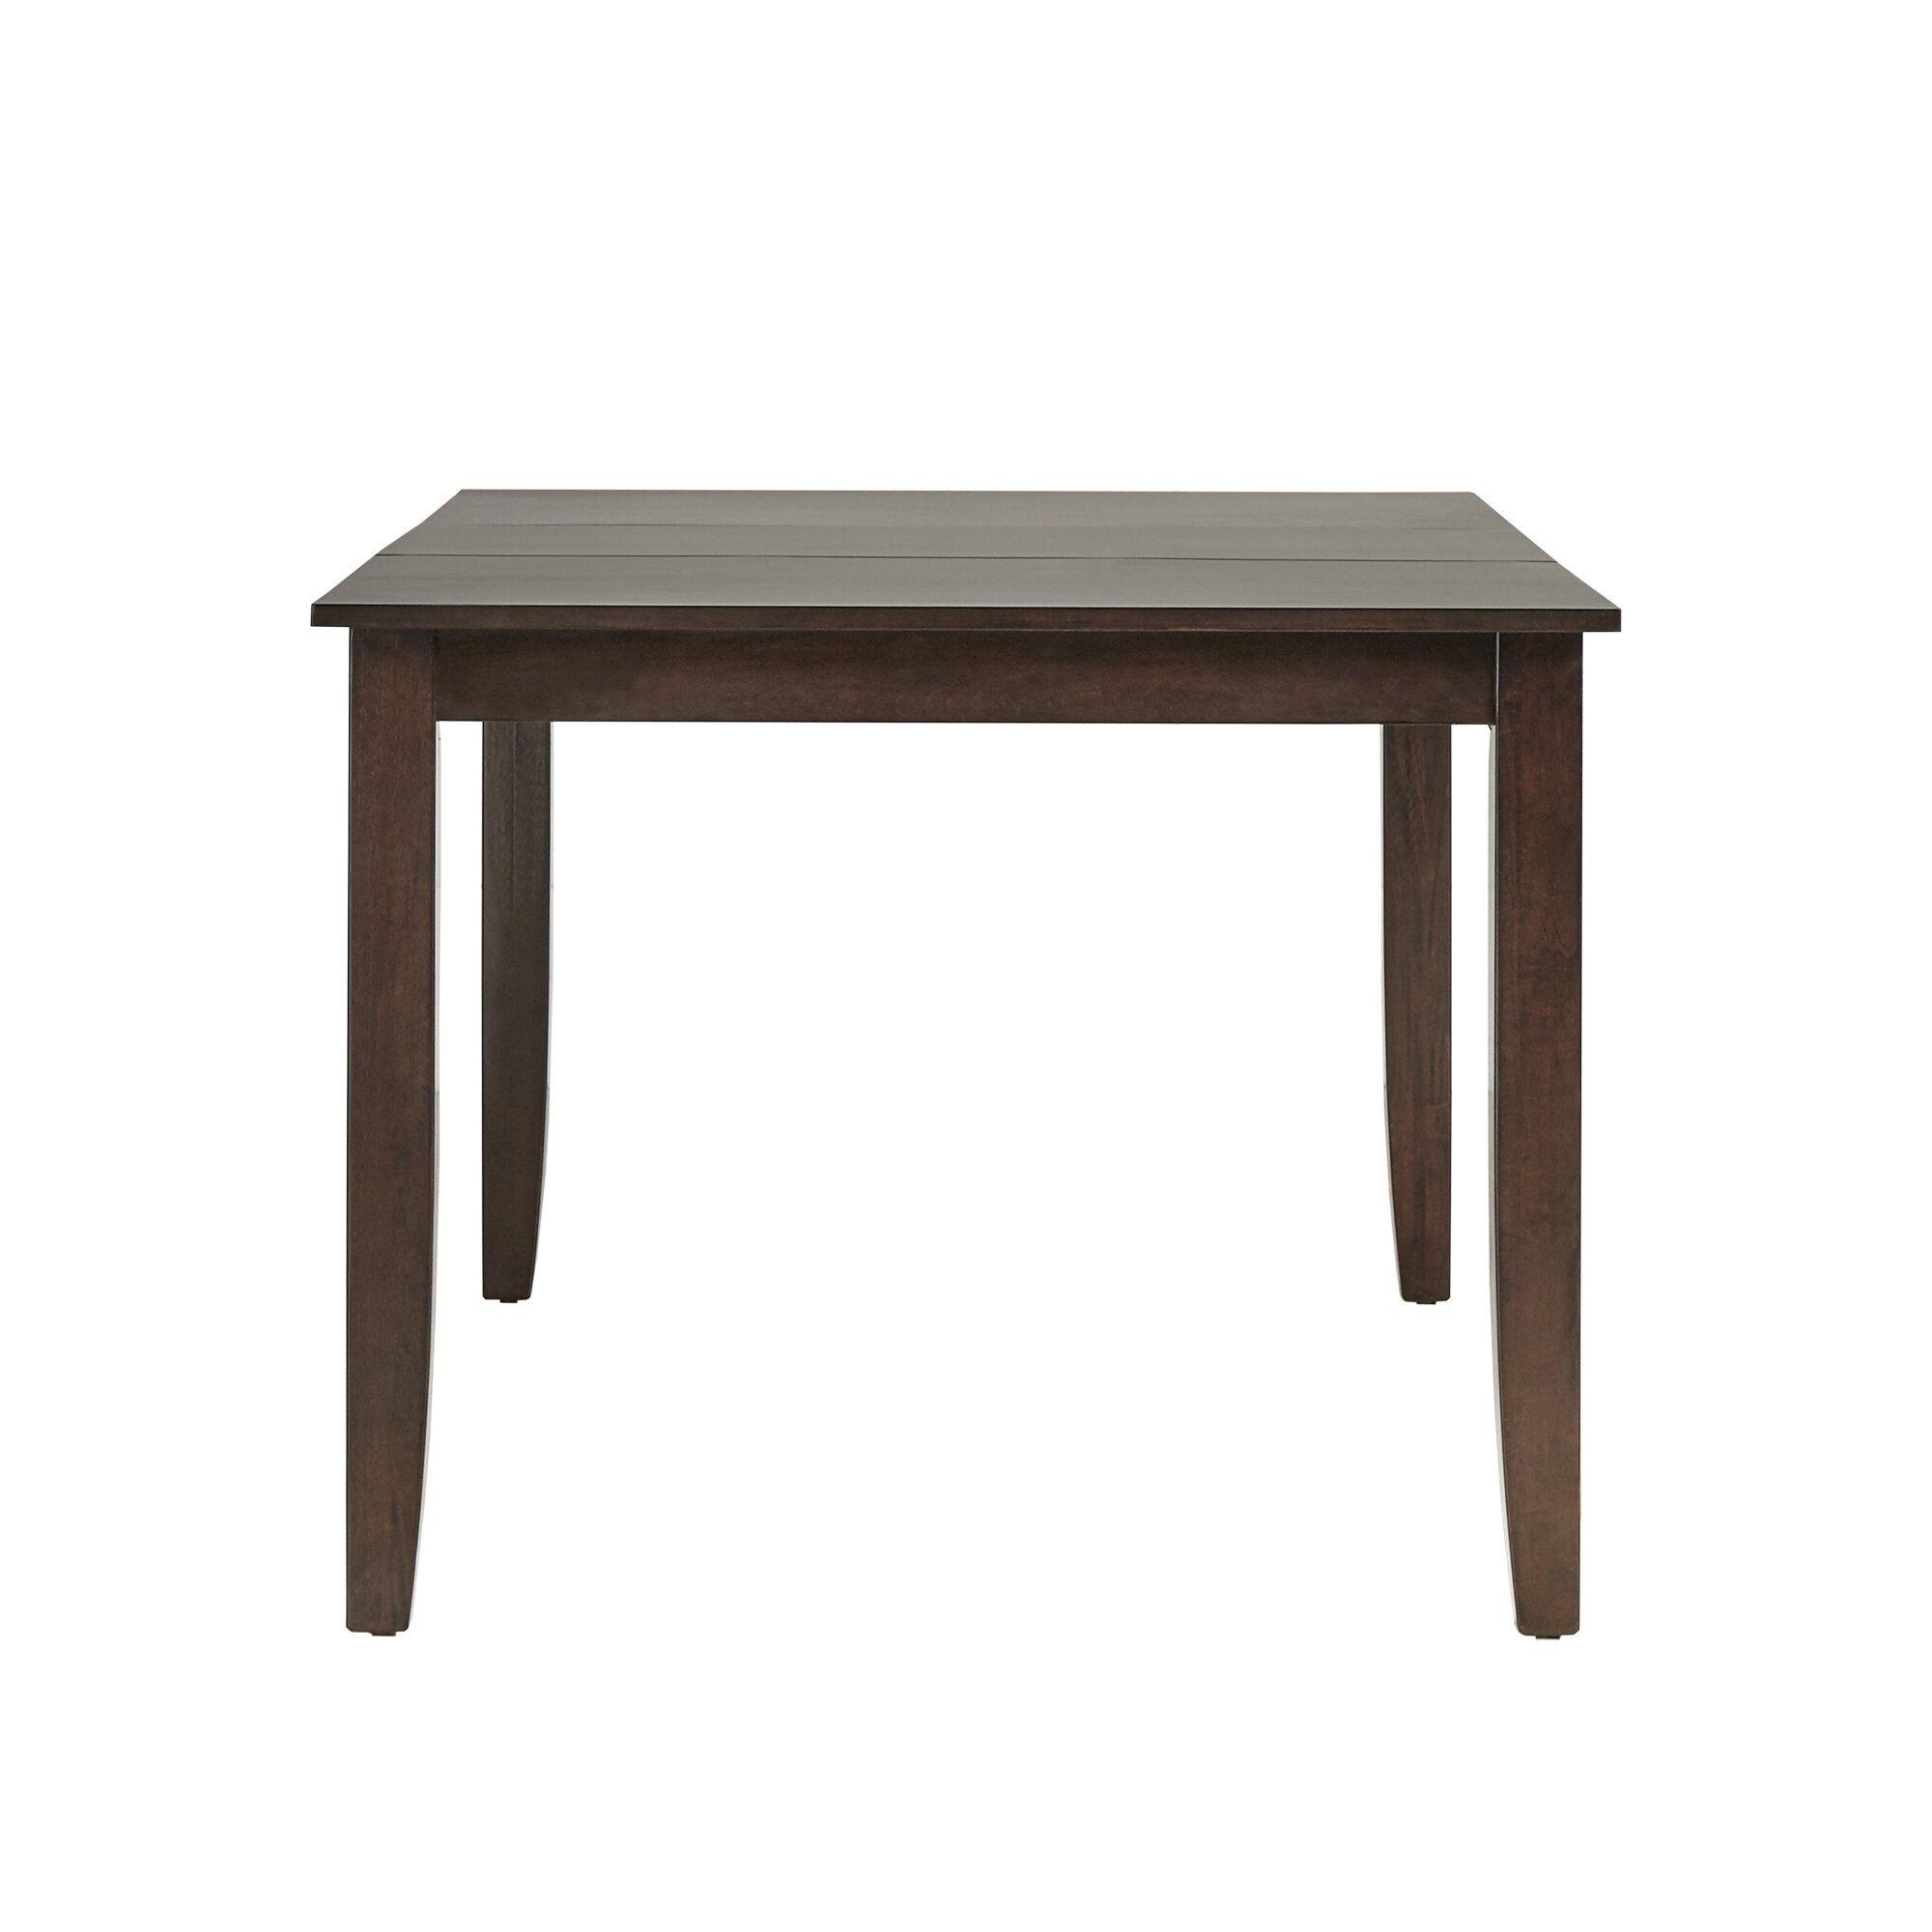 Dining Table For 3 Home Design